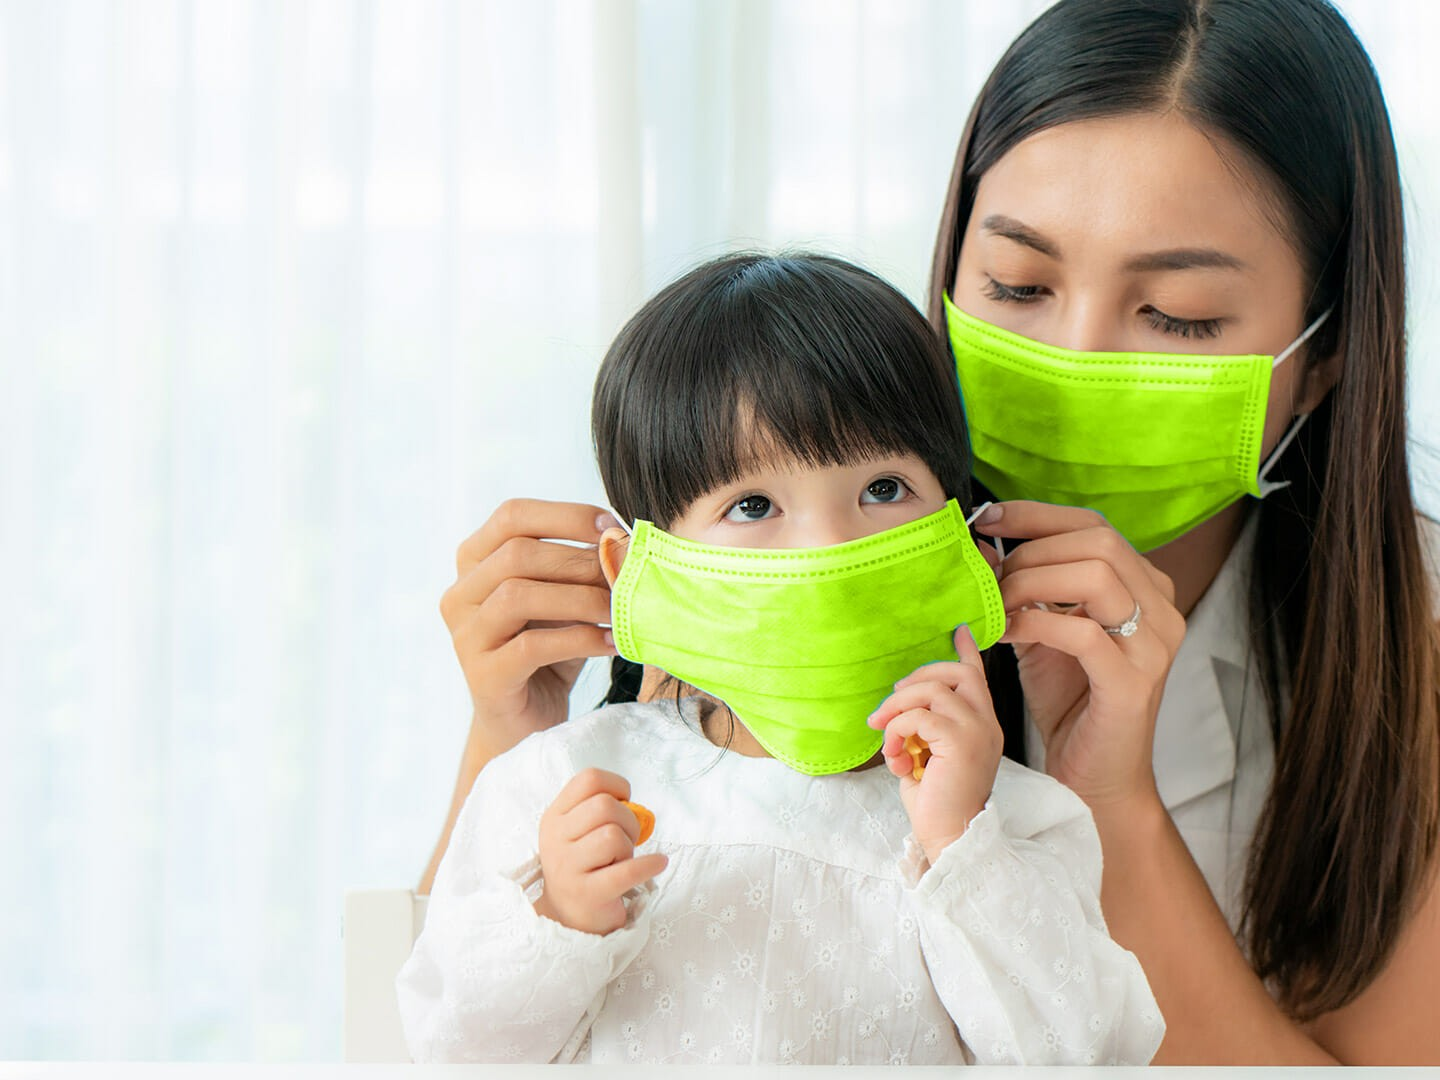 Parenting Tips for Navigating the COVID-19 Pandemic